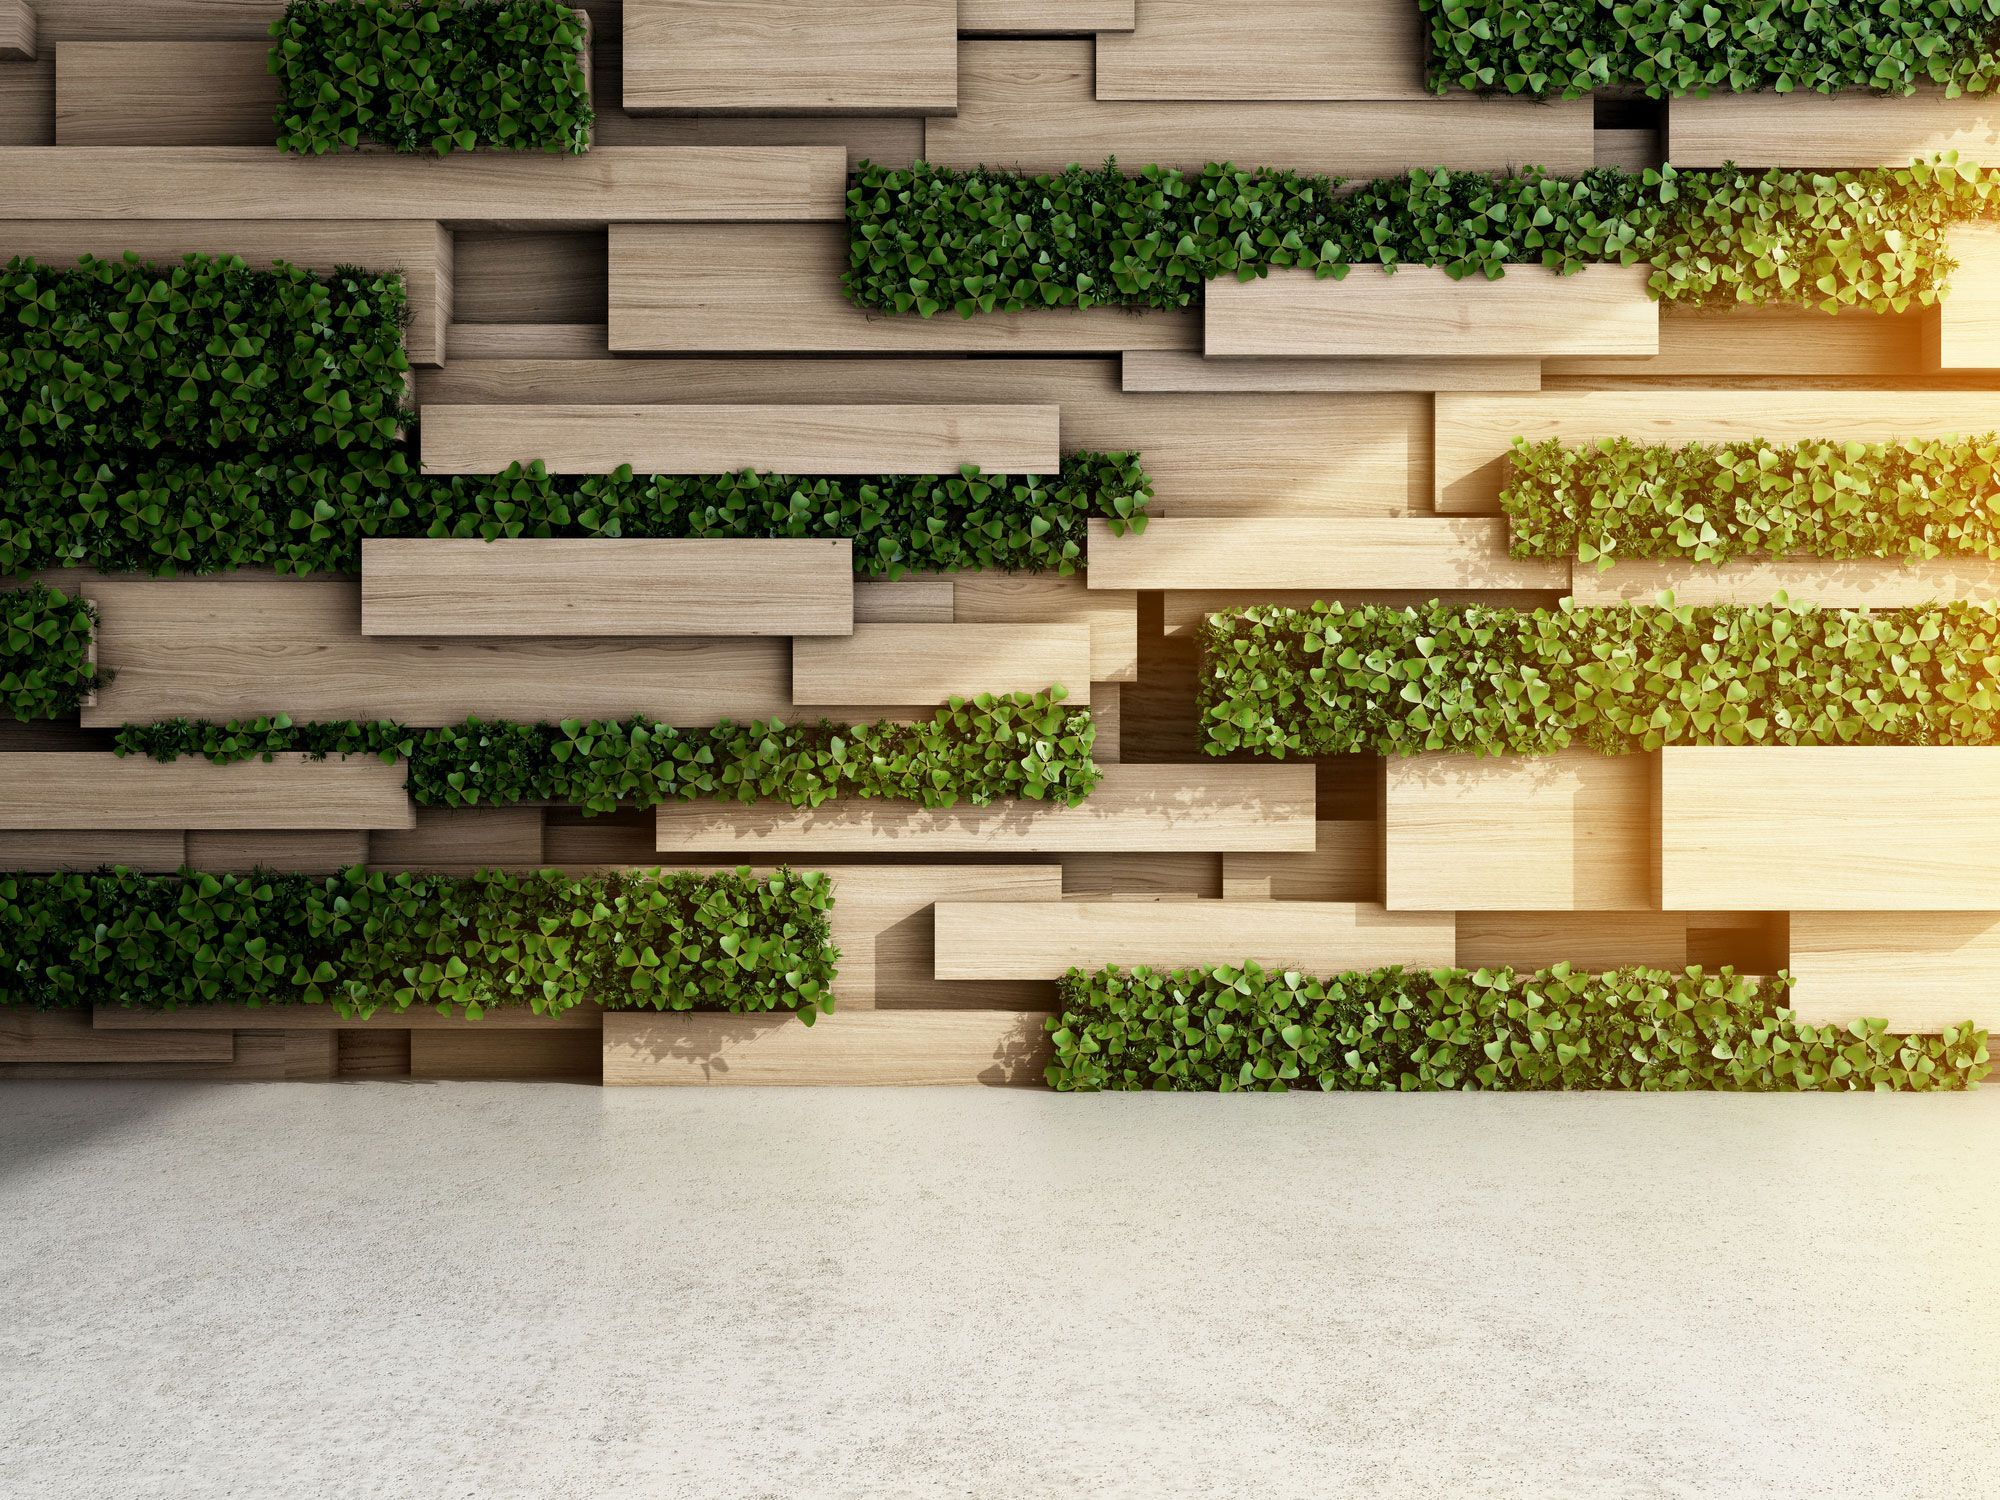 Understanding the socially responsible investing